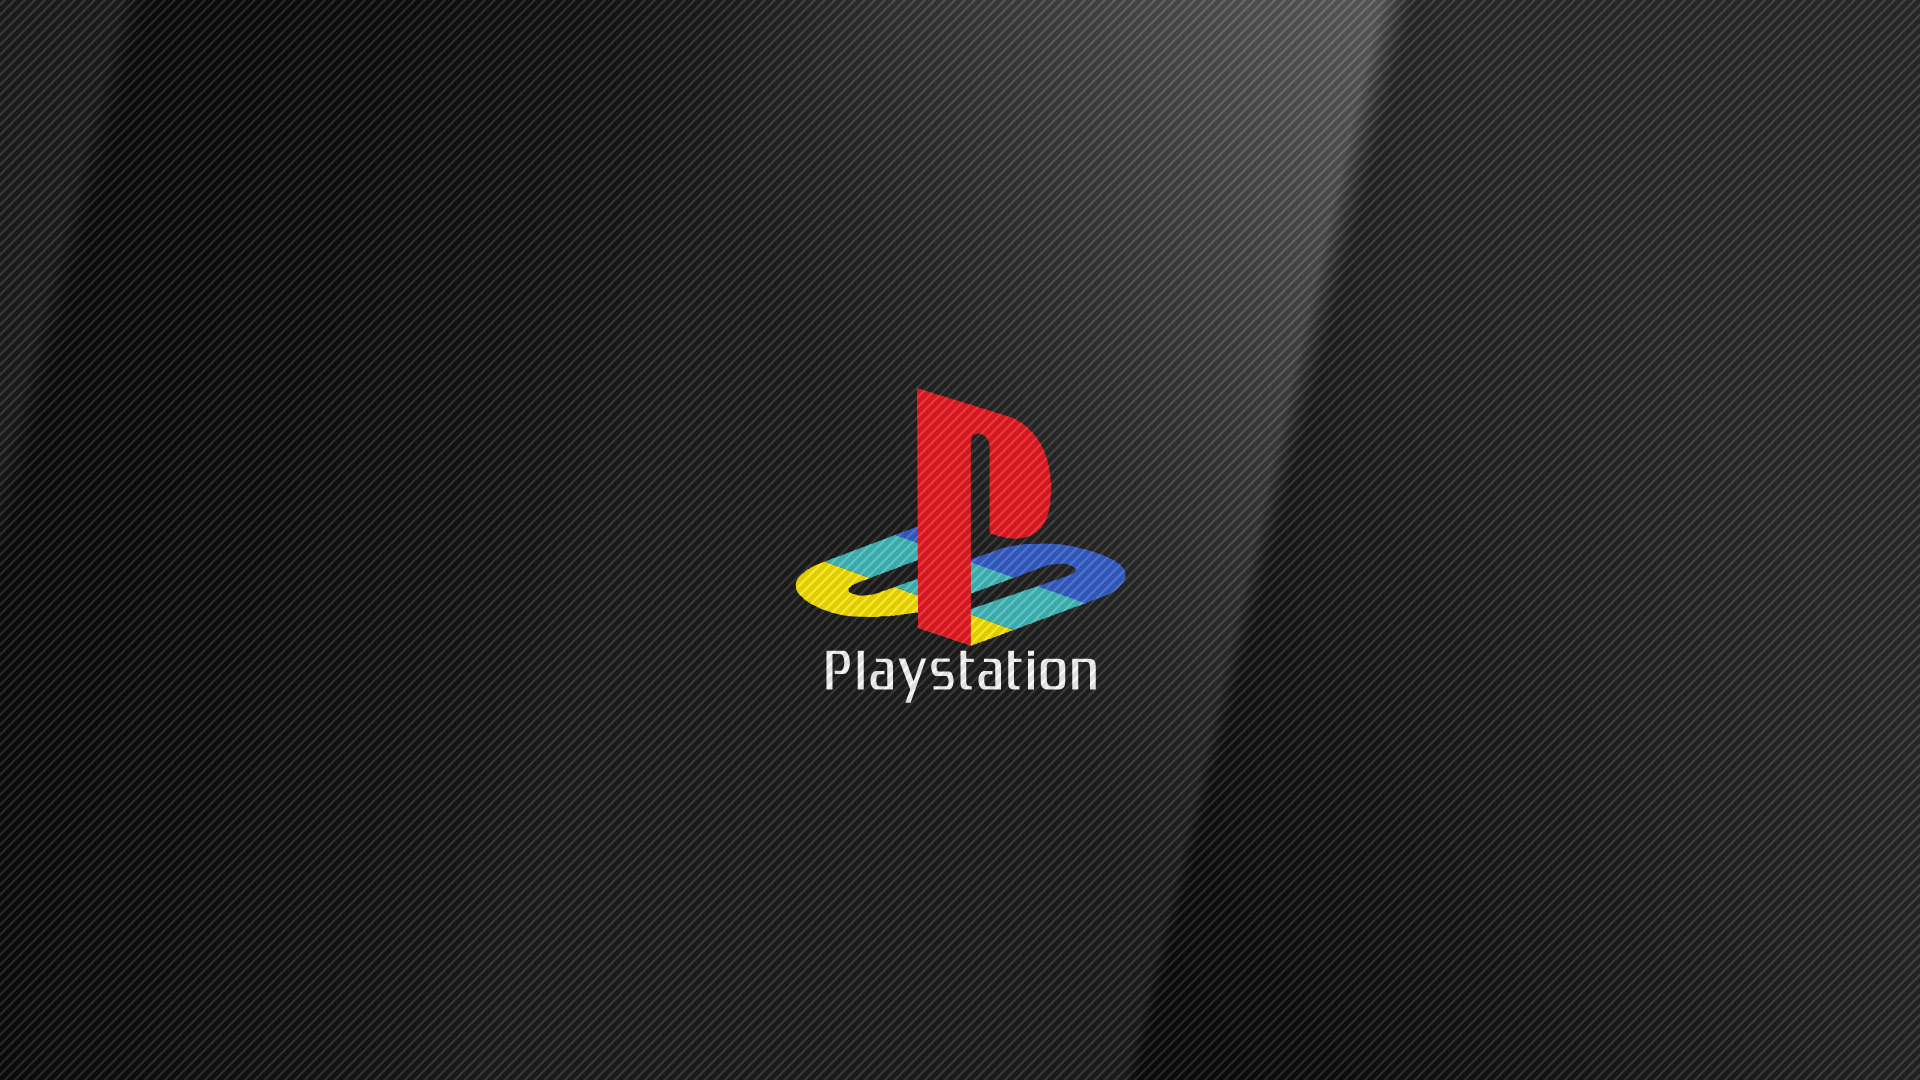 1920x1080 Sony Playstation Logo Desktop Pc And Mac Wallpaper